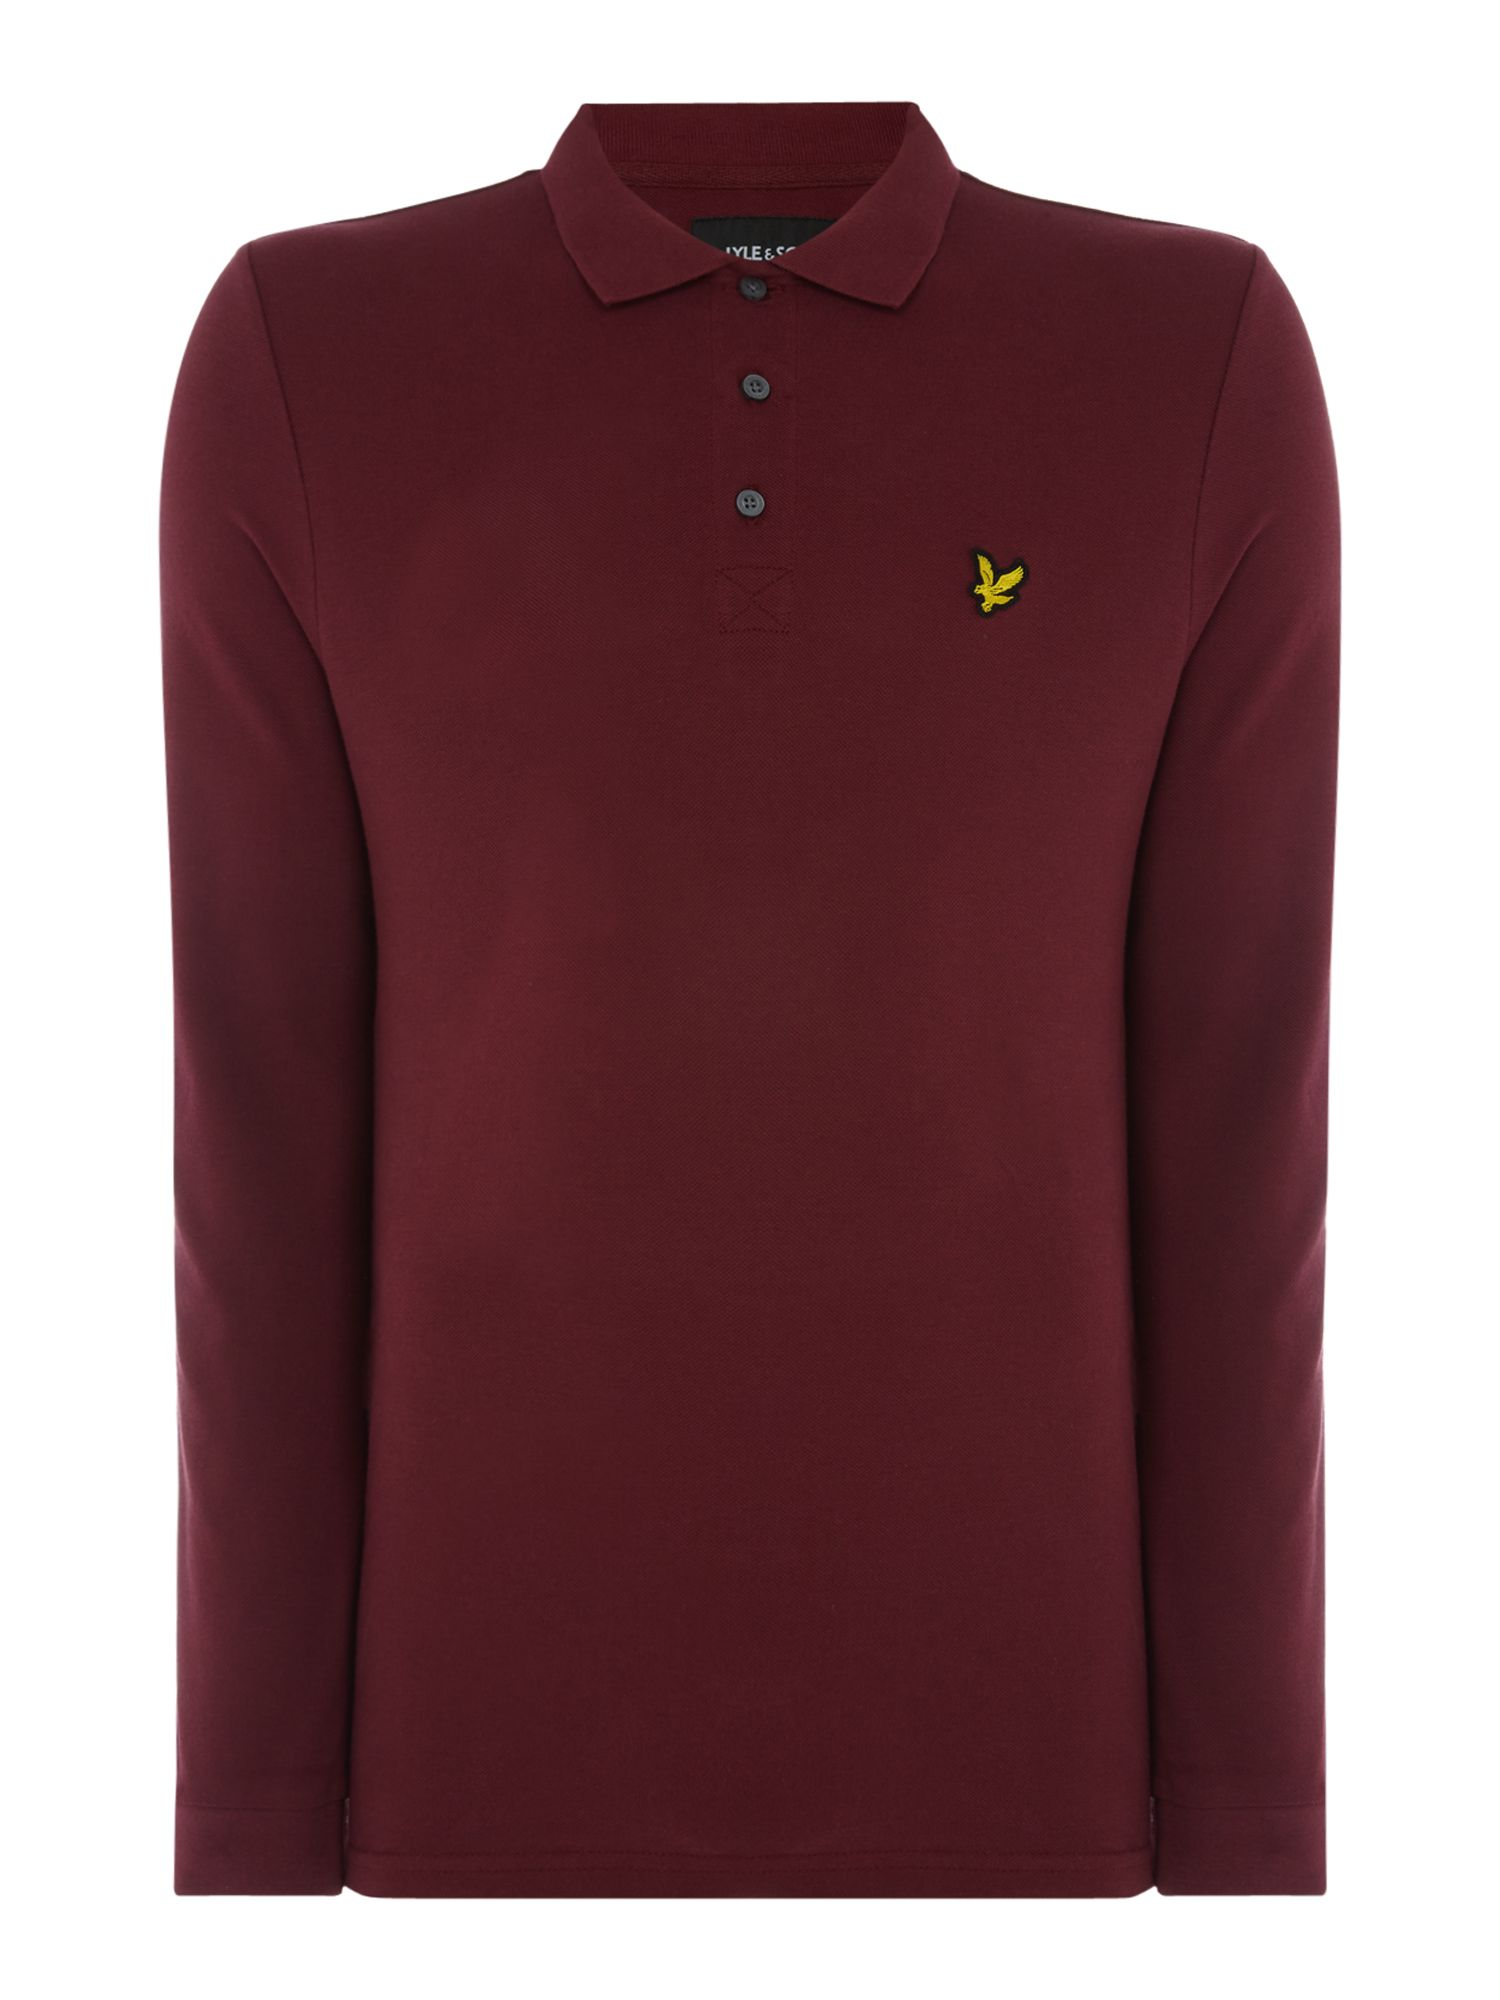 Men's Lyle and Scott Long Sleeve Classic Polo, Claret